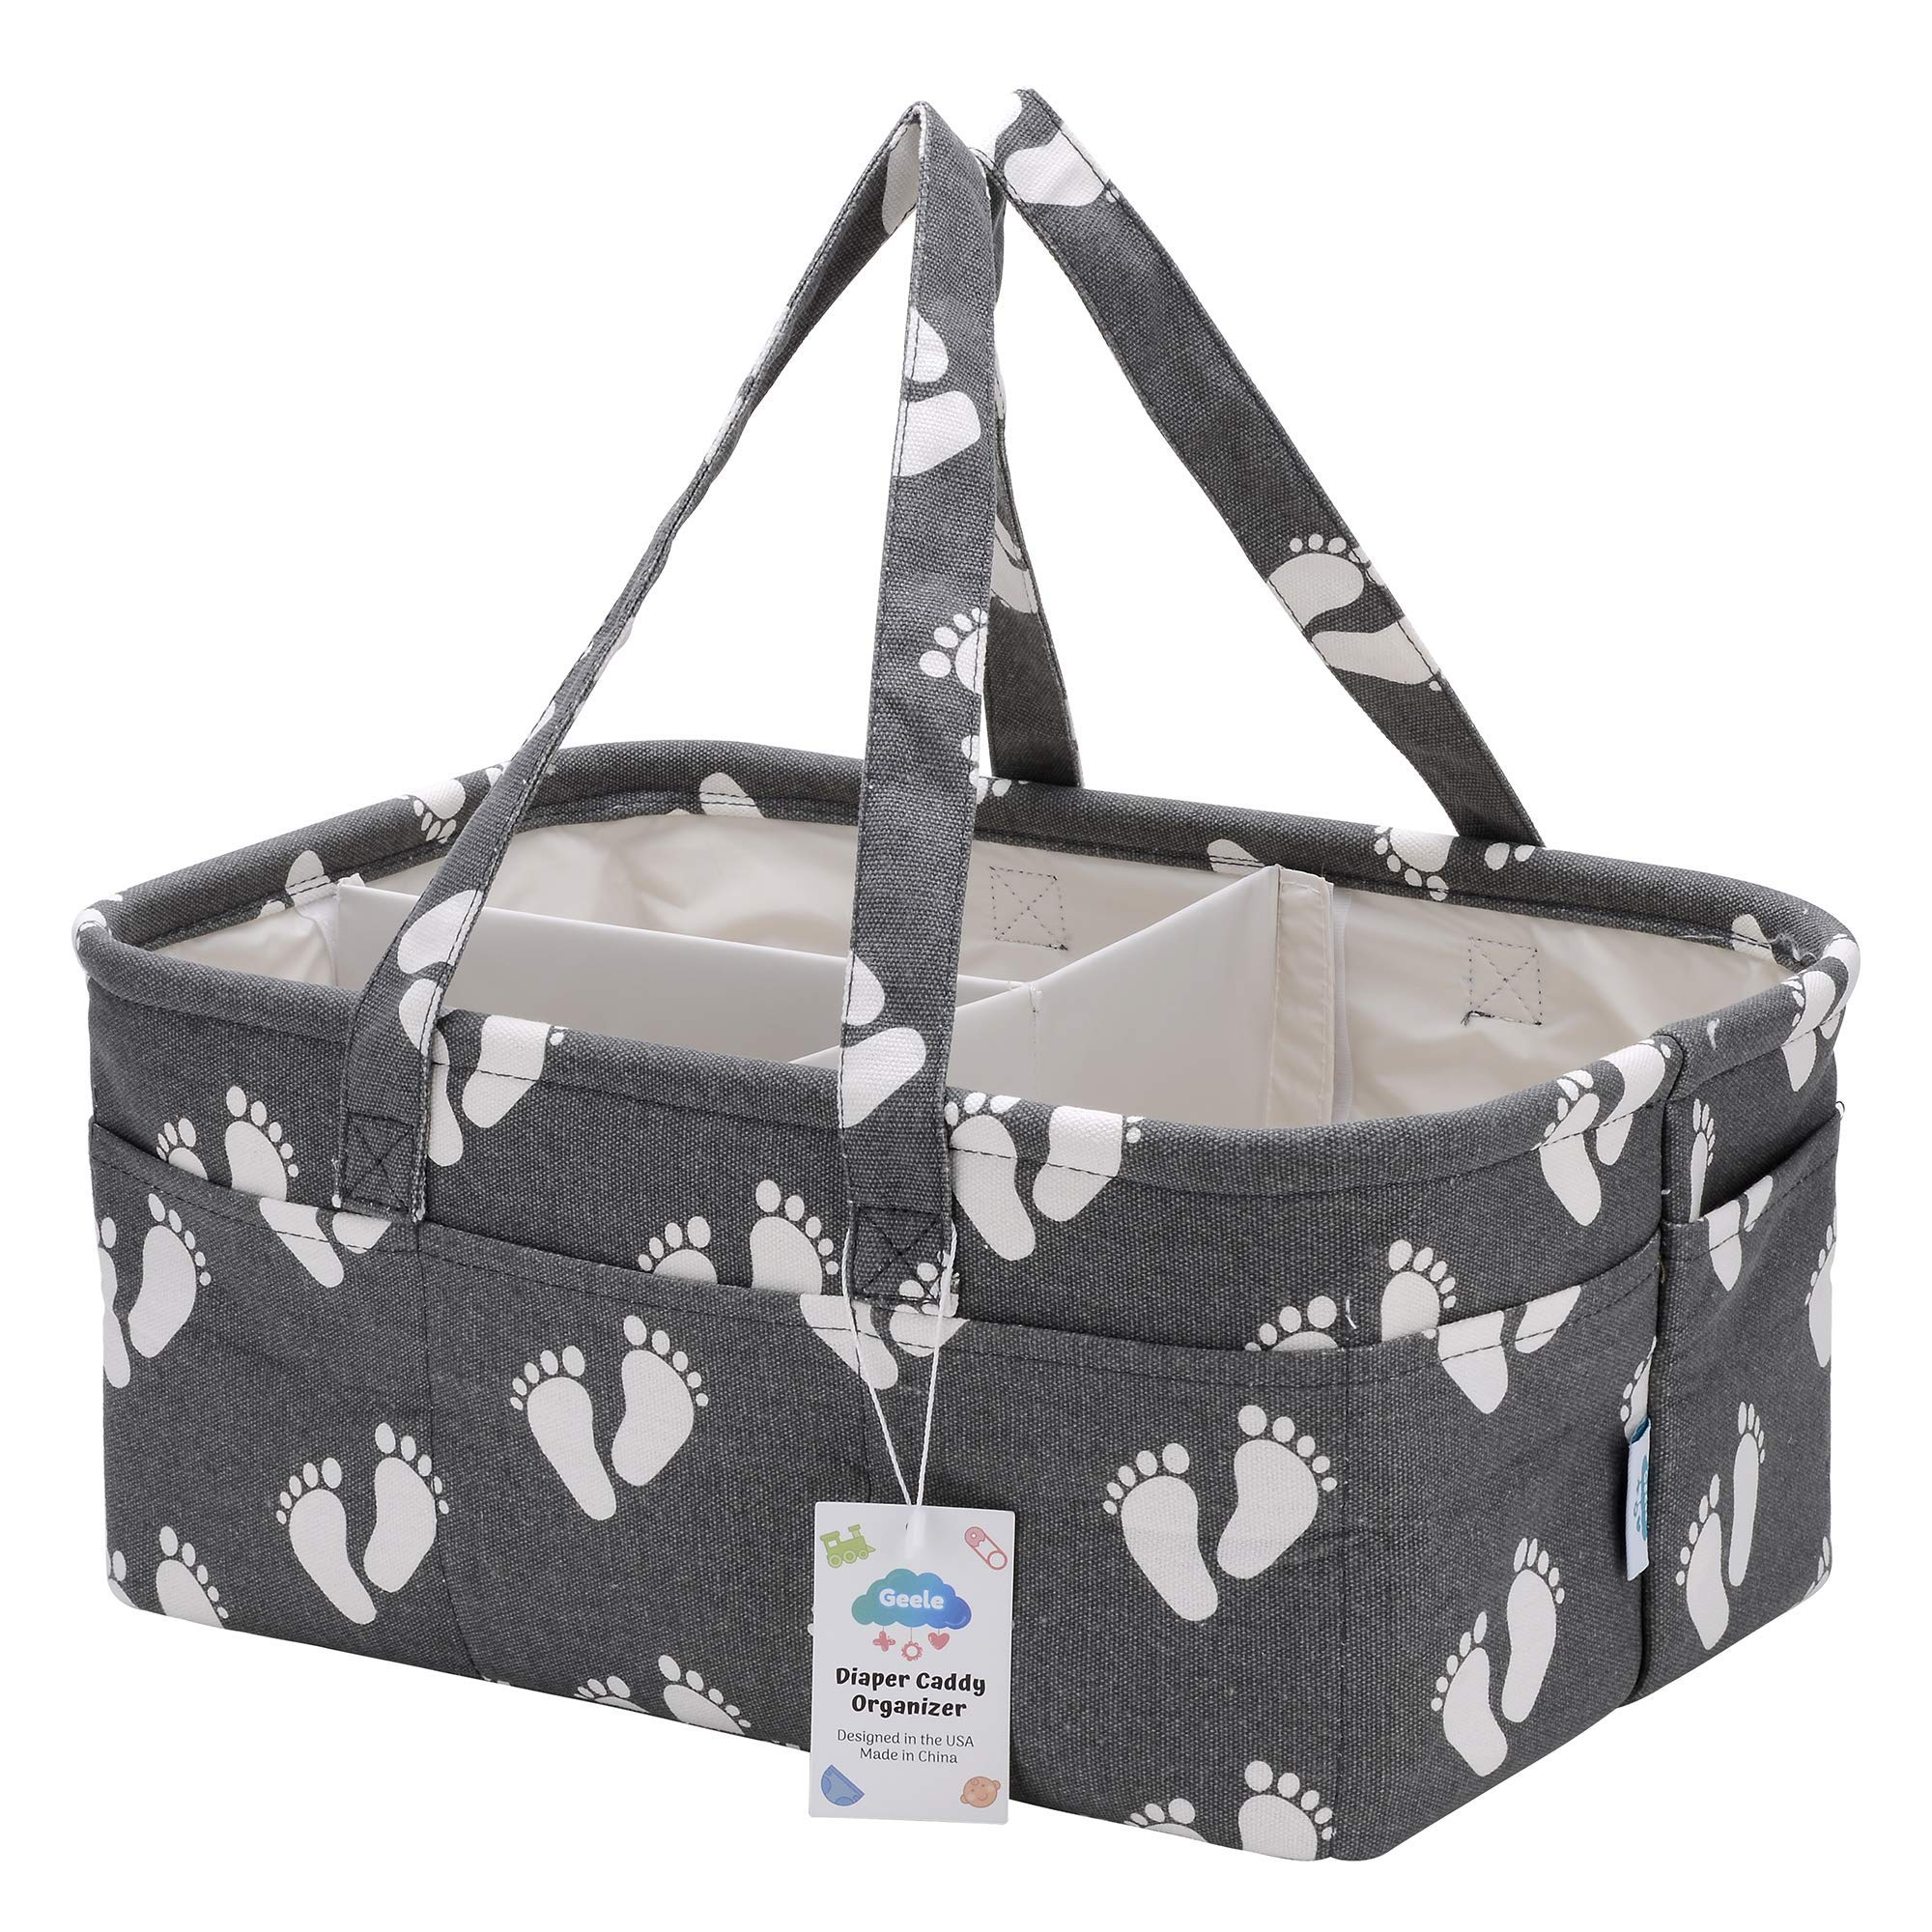 Geele Large Baby Diaper Caddy Organizer Bag, Portable Nursery Storage Bin for Changing Table, Car Travel Tote for Newborn & Infant, Foldable Compact Baby Basket, Strong Durable Cotton Canvas by Geele